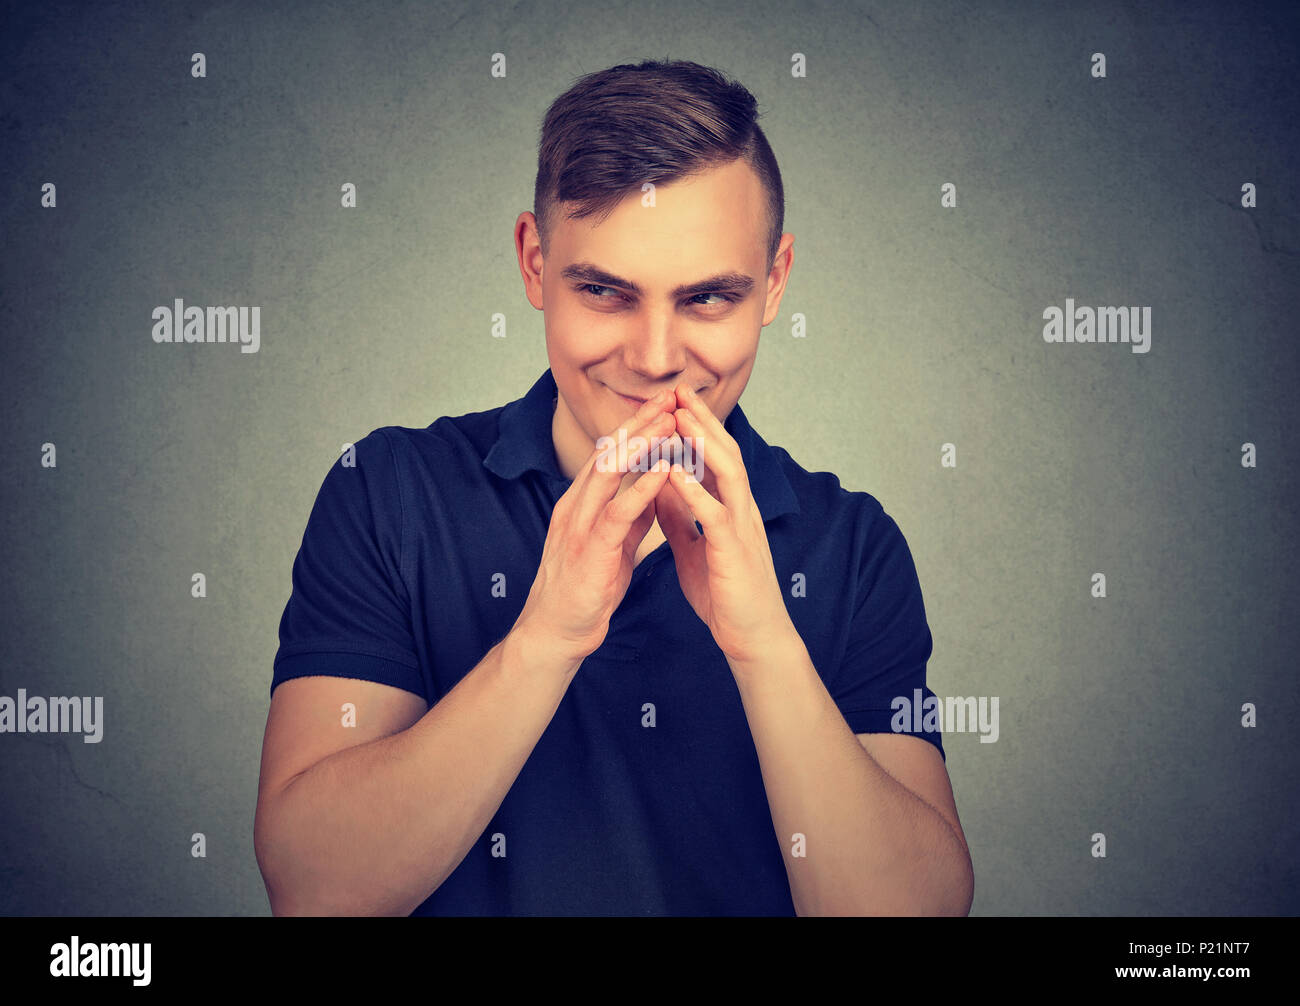 Sneaky man plotting something isolated on gray wall background. Negative human emotion facial expression feeling attitude - Stock Image